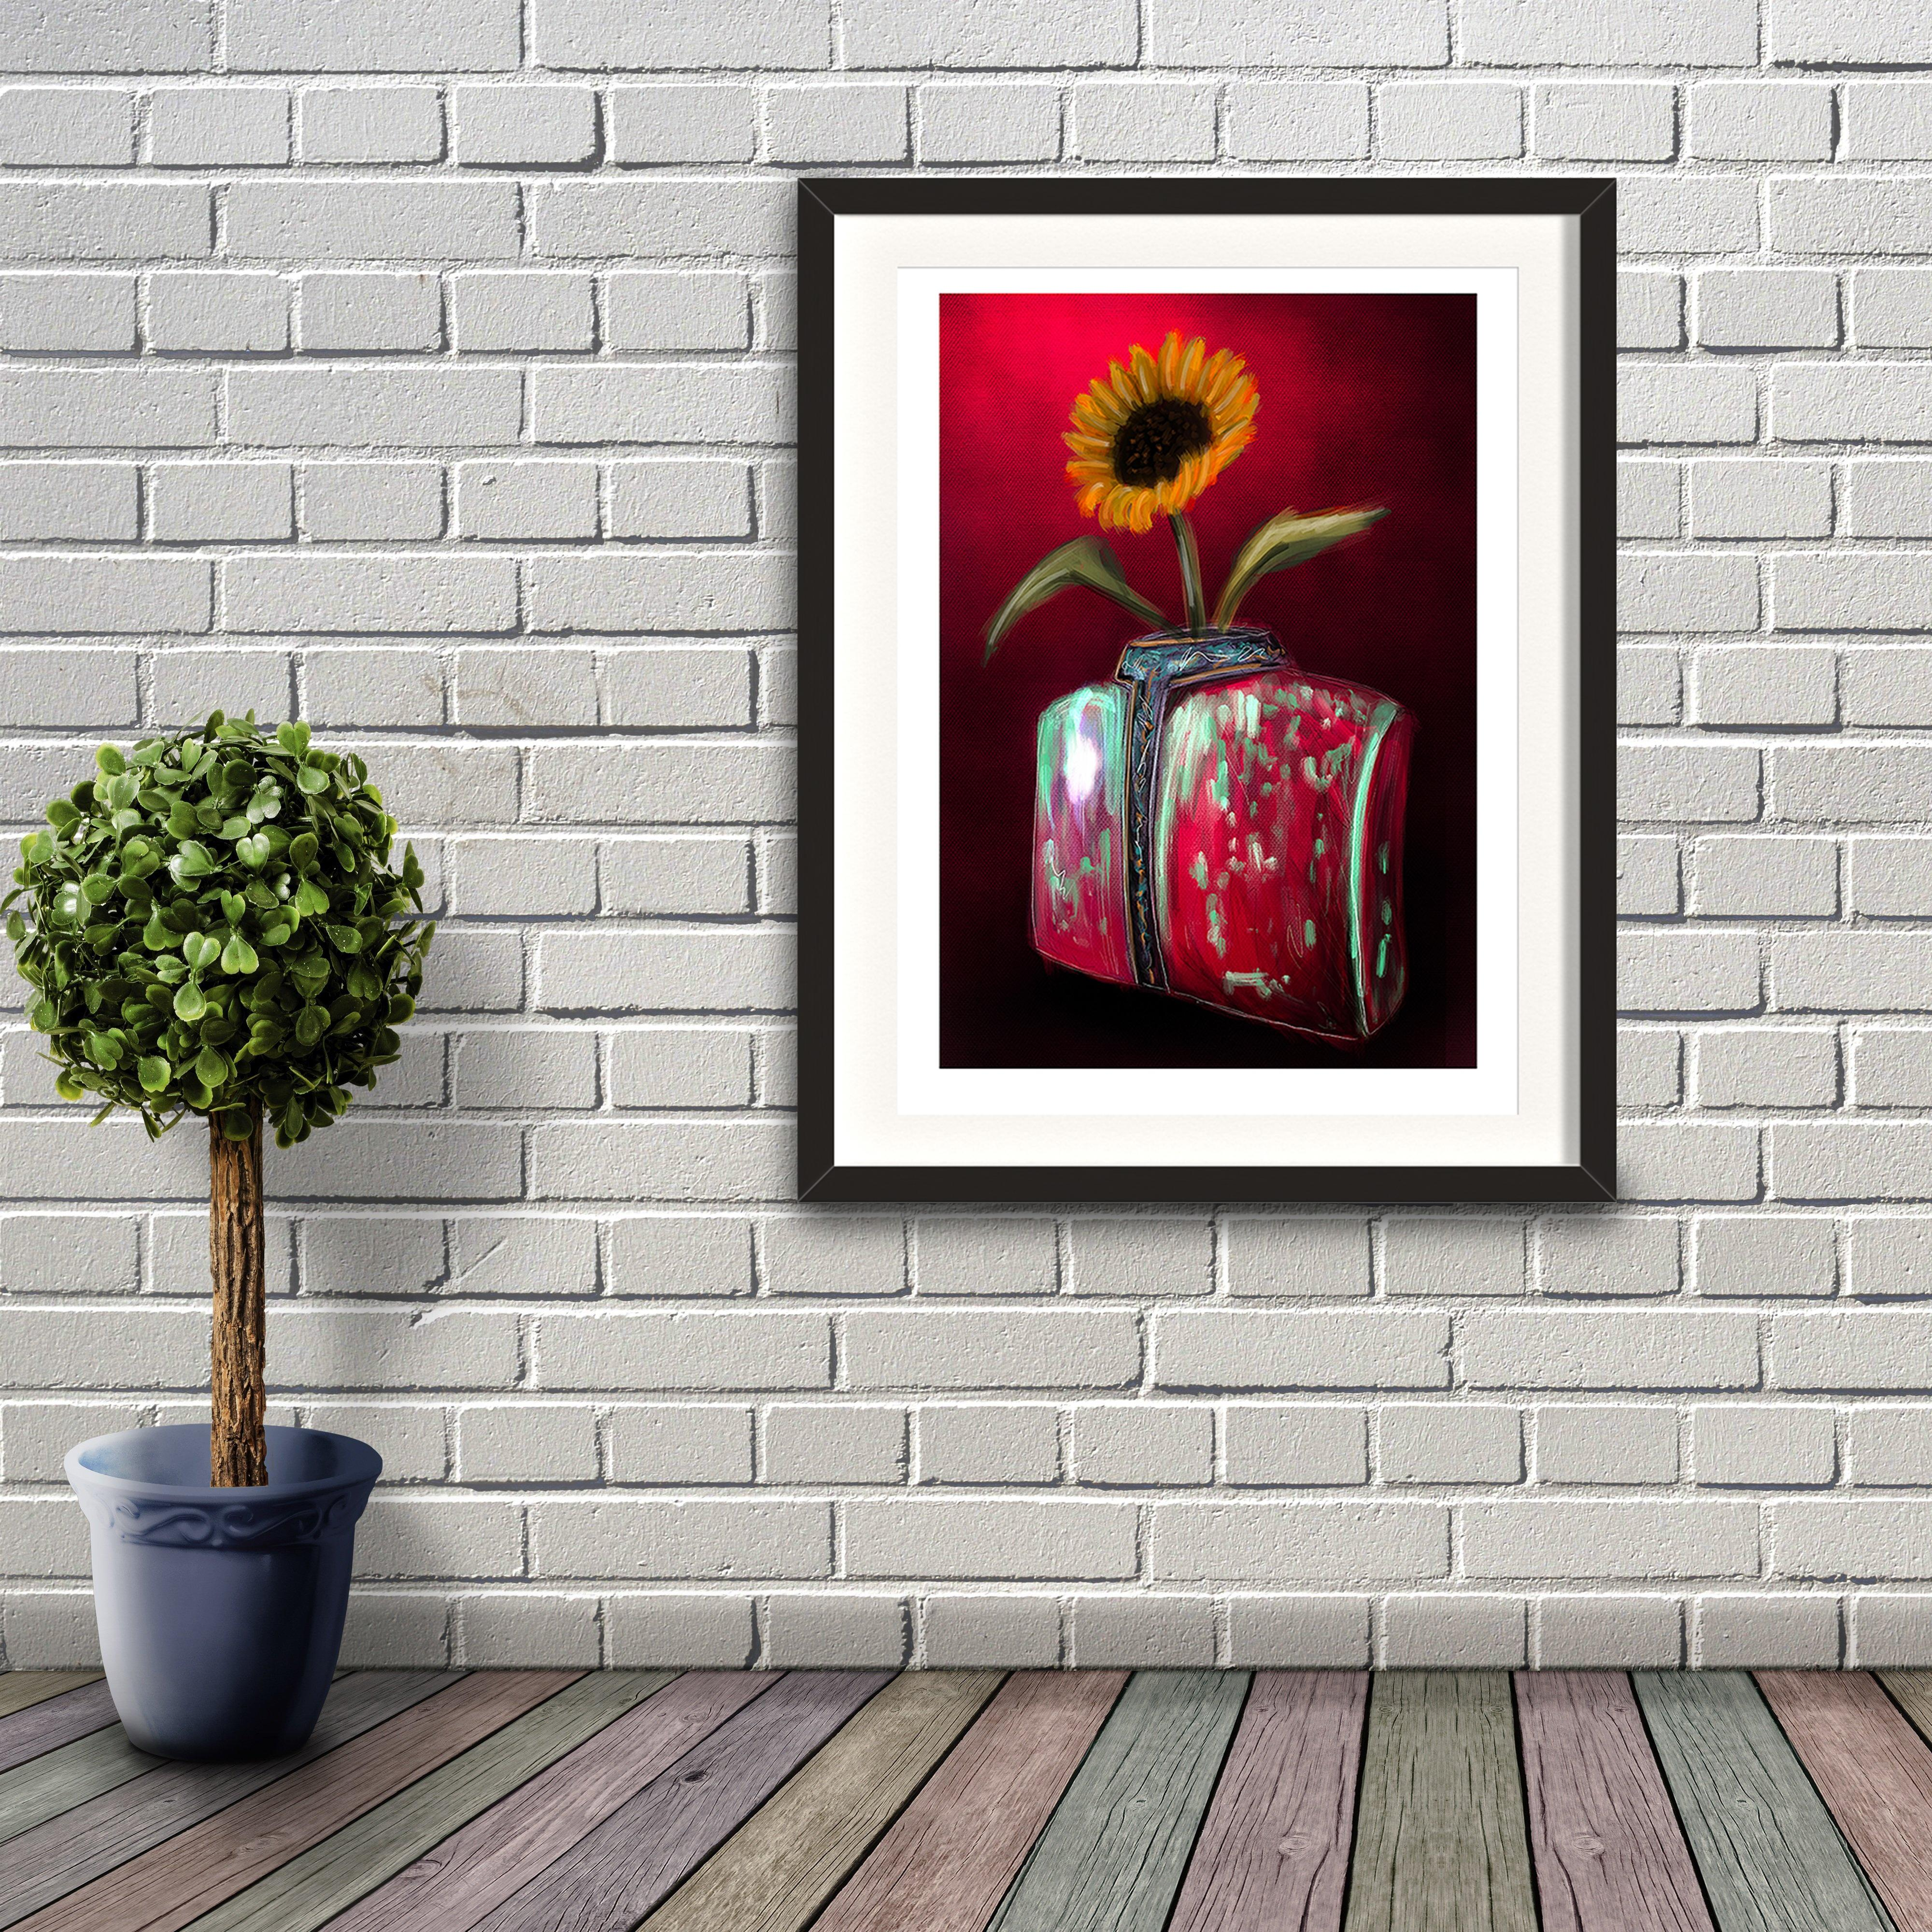 A digital painting by Lily Bourne printed on eco fine art paper titled Blooming showing a solitary sunflower in a torso shaped red and green coloured against a deep red wall. Artwork shown framed against a brick wall.